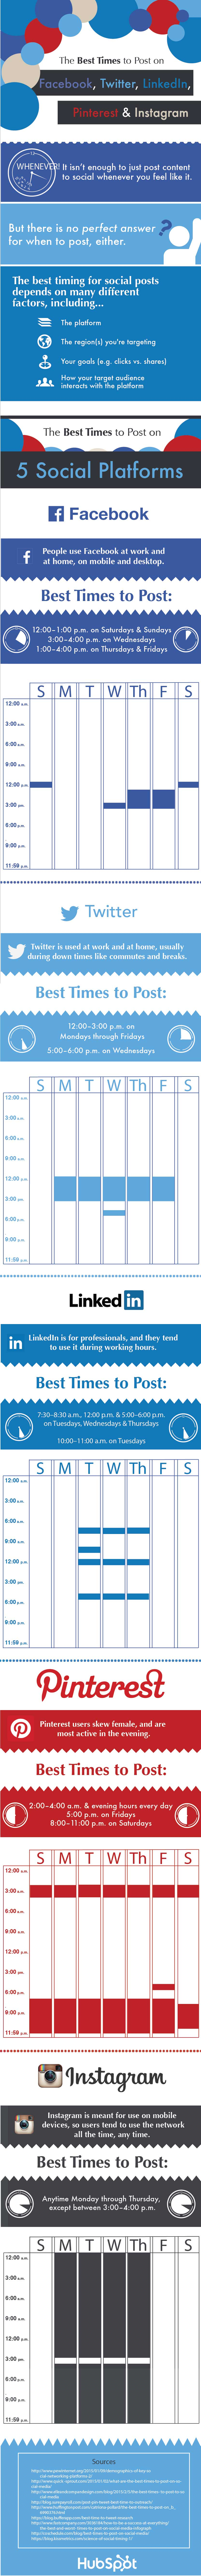 infographic-of-the-week-the-best-time-to-post-on-social-media-facebook-linkedin-twitter-pinterest-instagram image